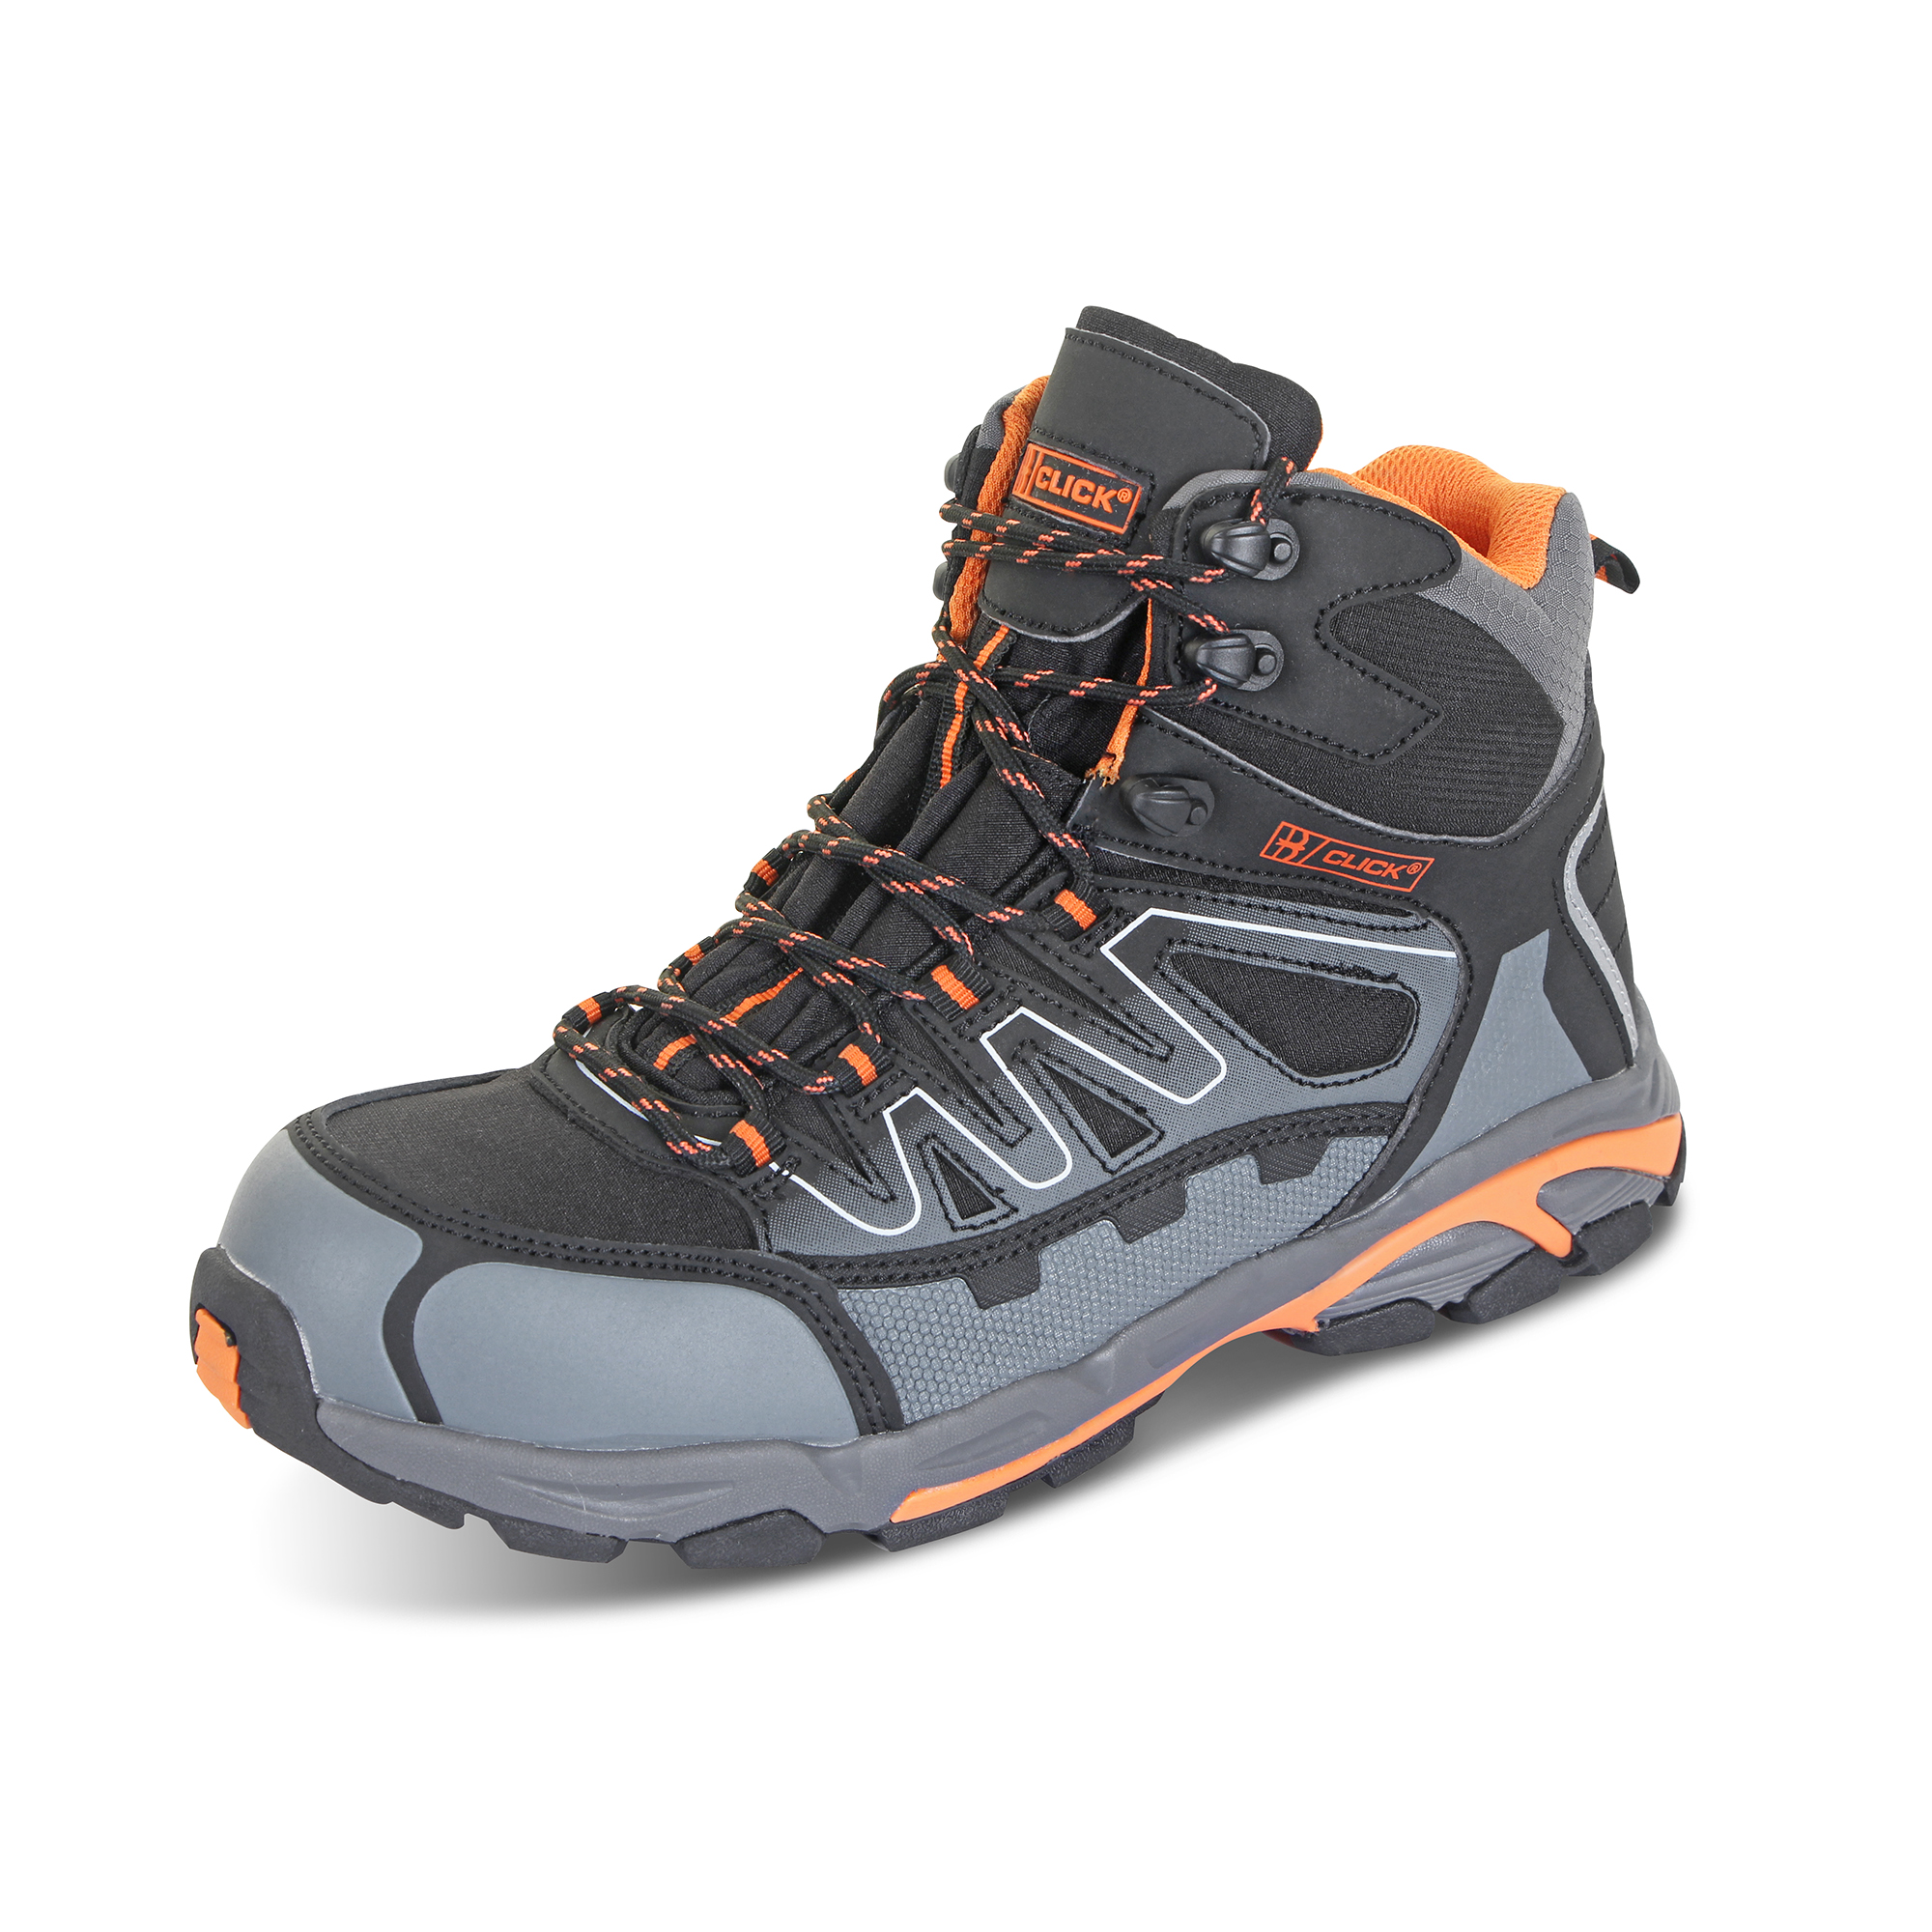 Limitless Click Footwear Leather S3 Hiker Boot Composite Toe Size 7 Black/Grey Ref CF3507 *Up to 3 Day Leadtime*